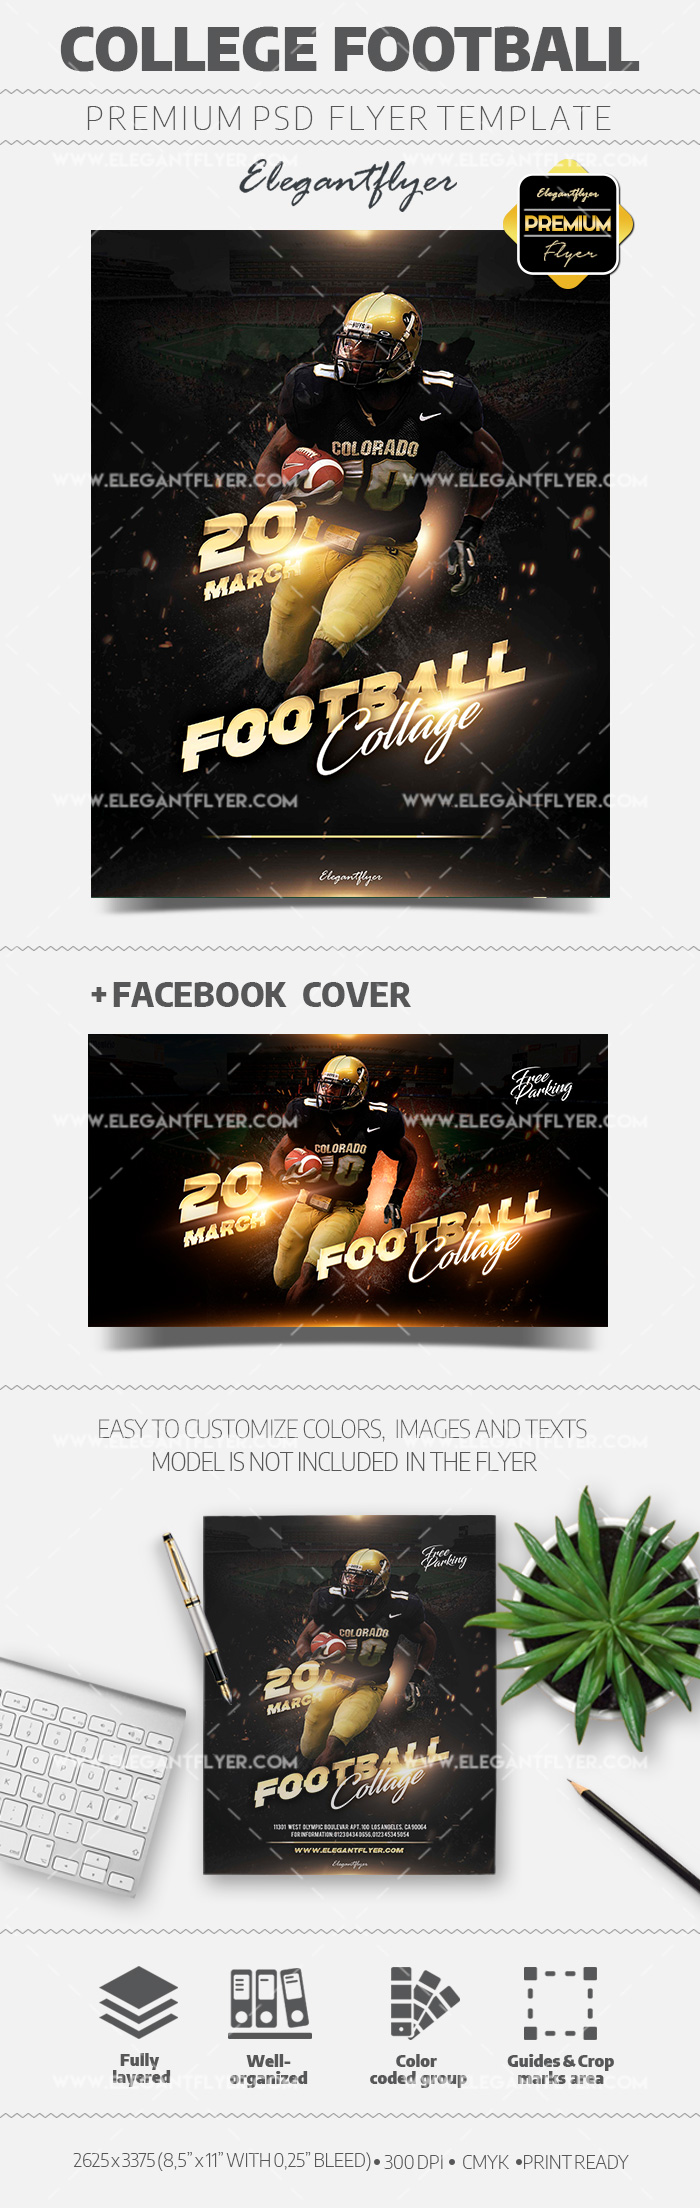 Sunday College Football Flyer Template By Elegantflyer